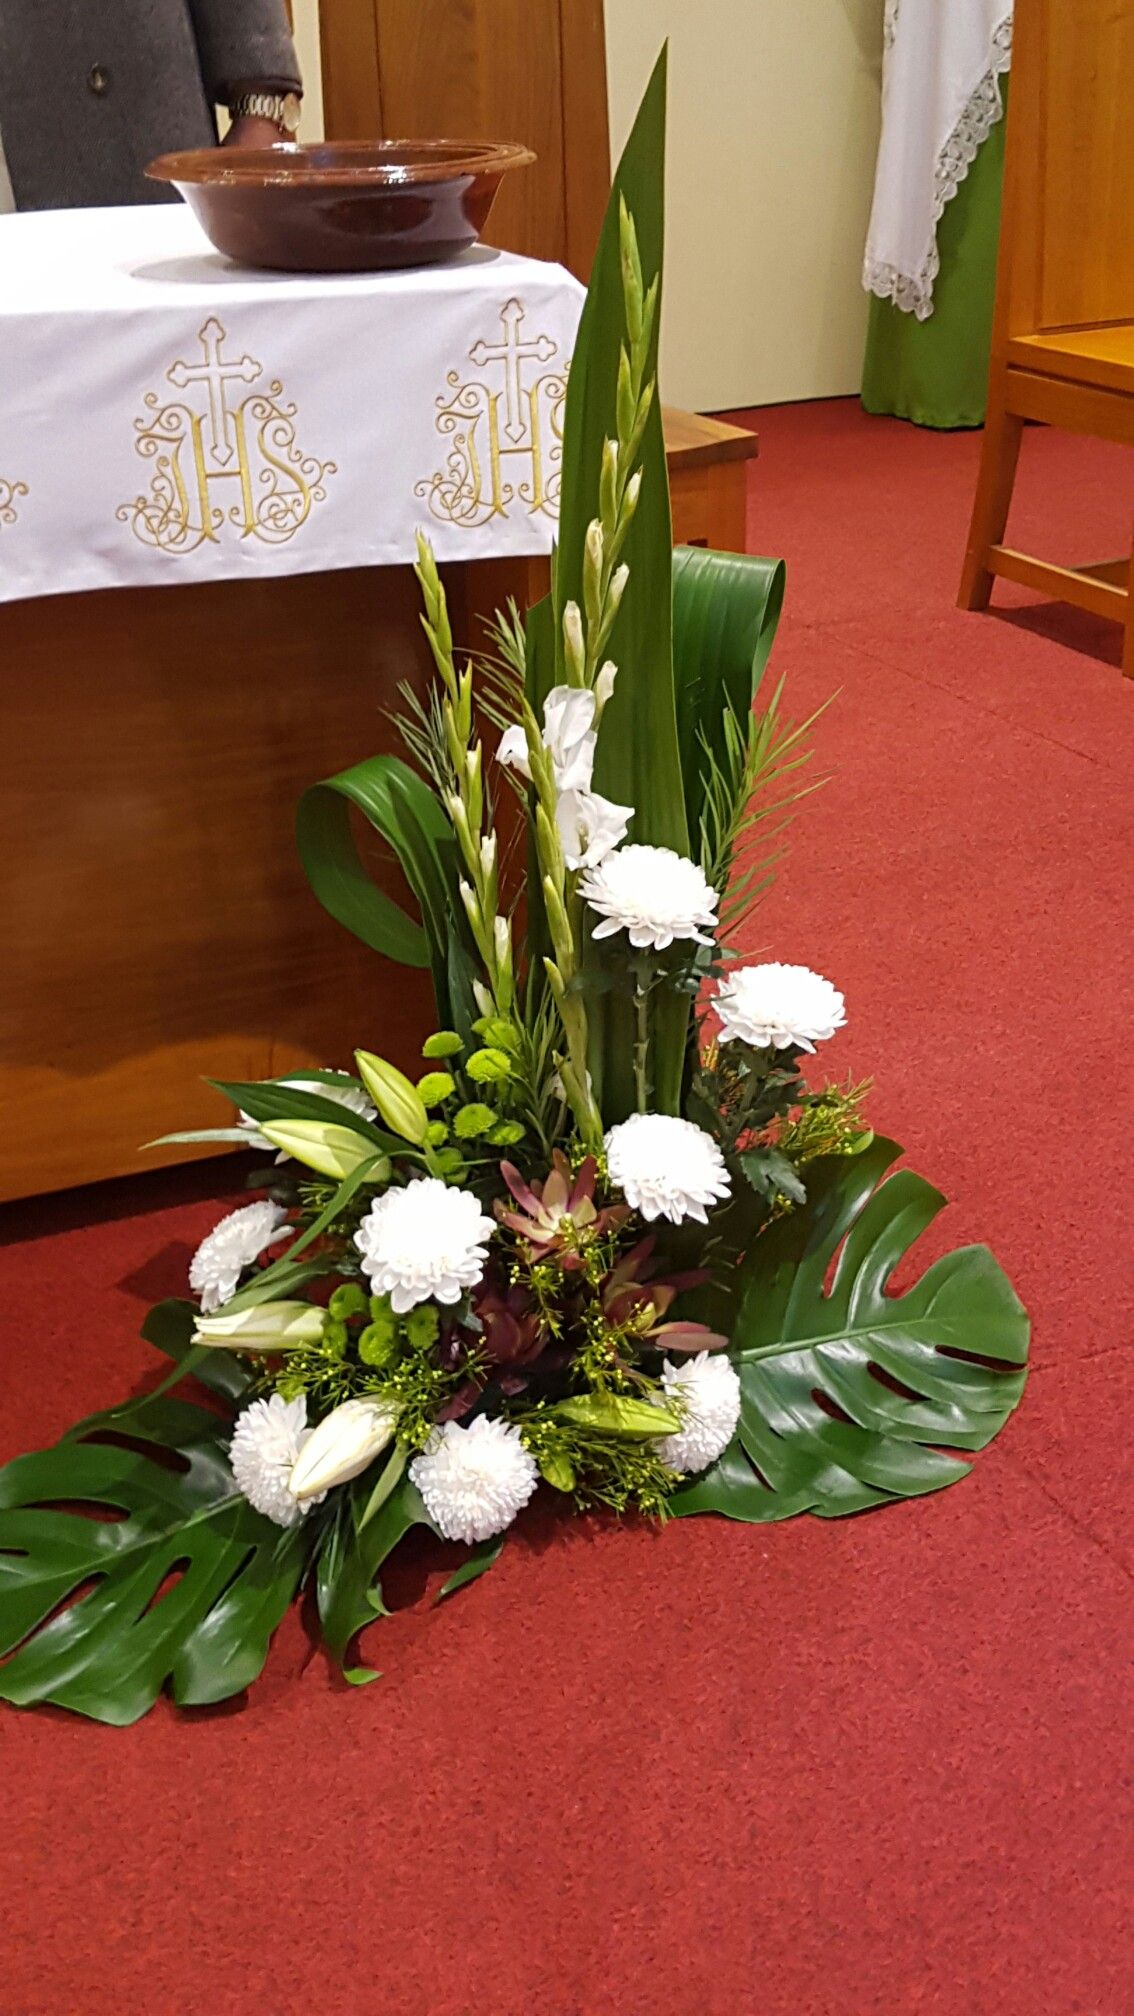 Church Flowers Easter Flower Arrangements Large Flower Arrangements Fresh Flowers Arrangements